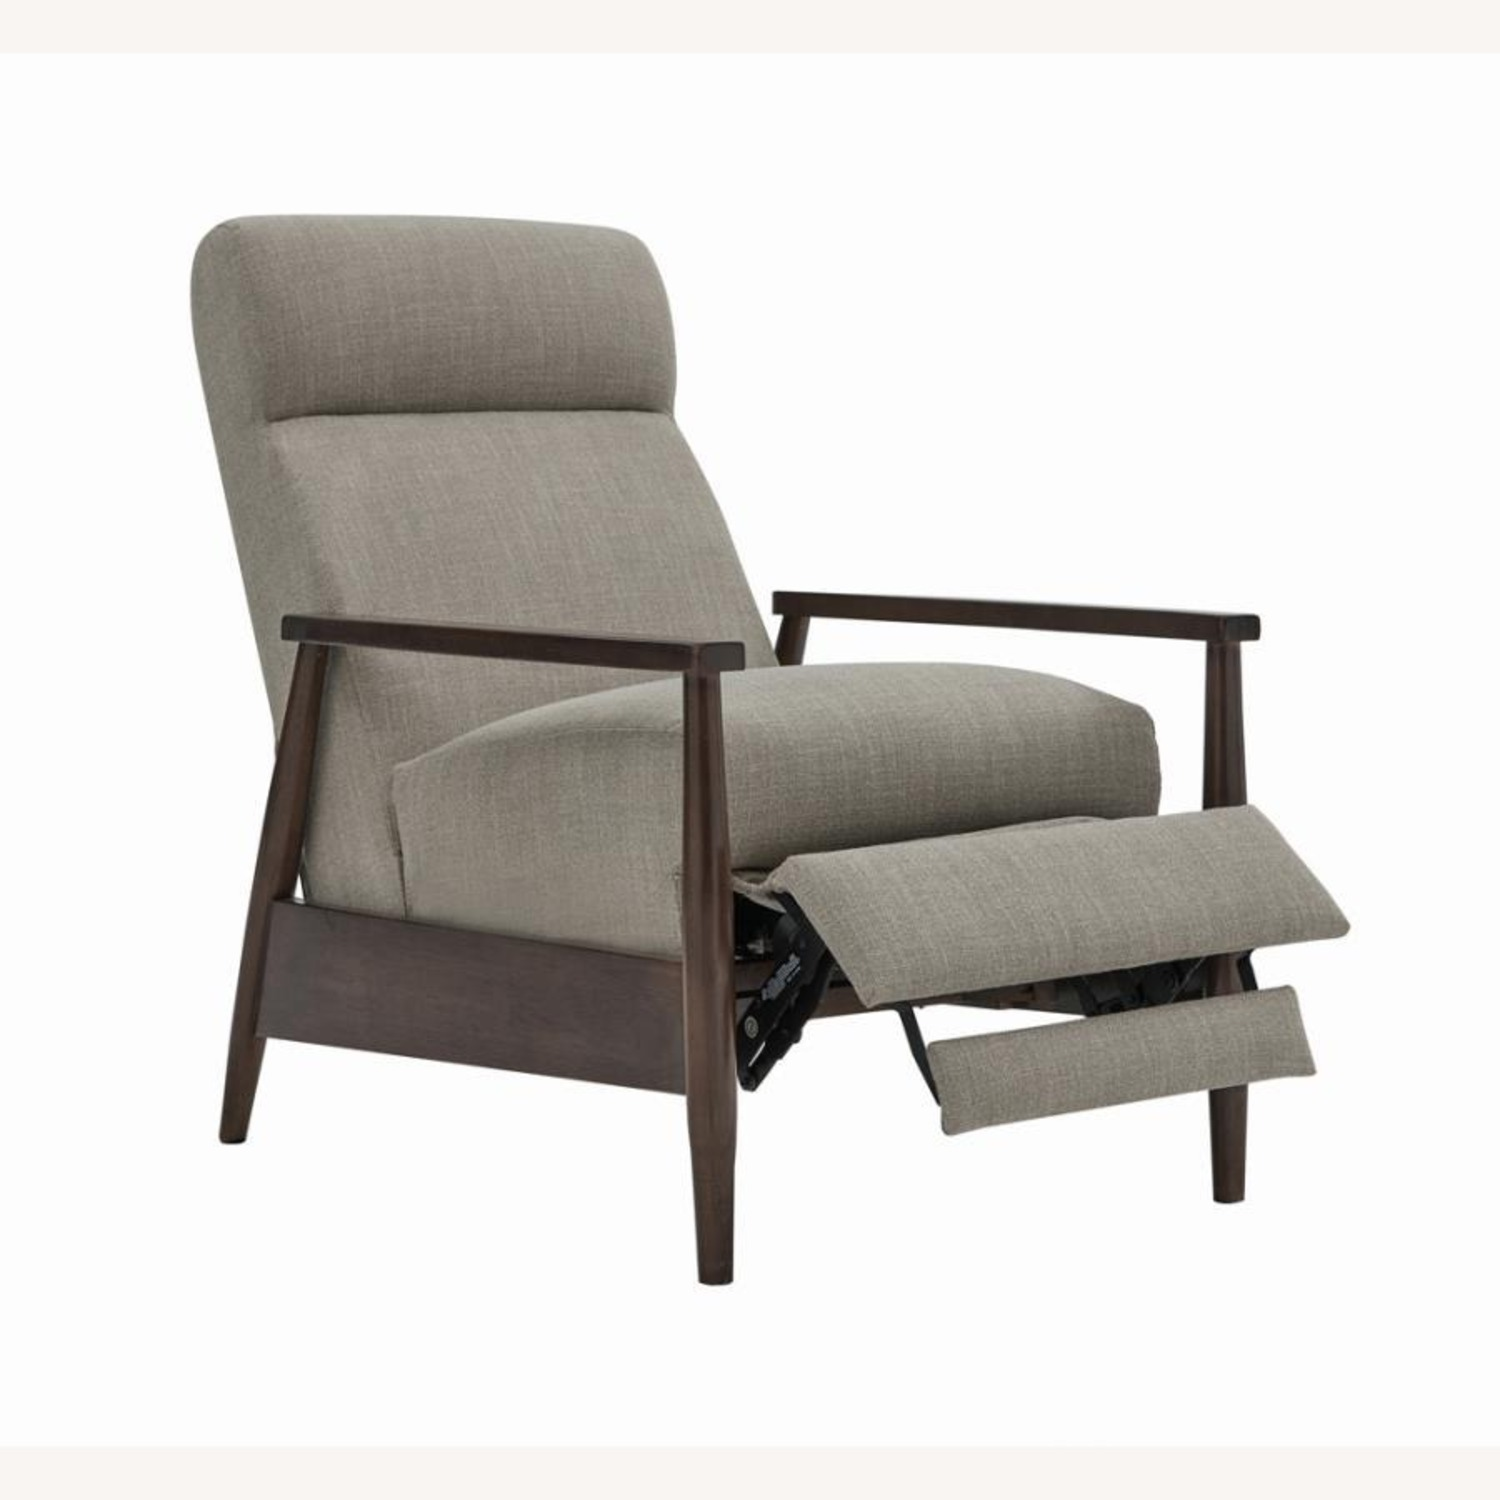 Push-Back Recliner In Cream Performance Fabric - image-1